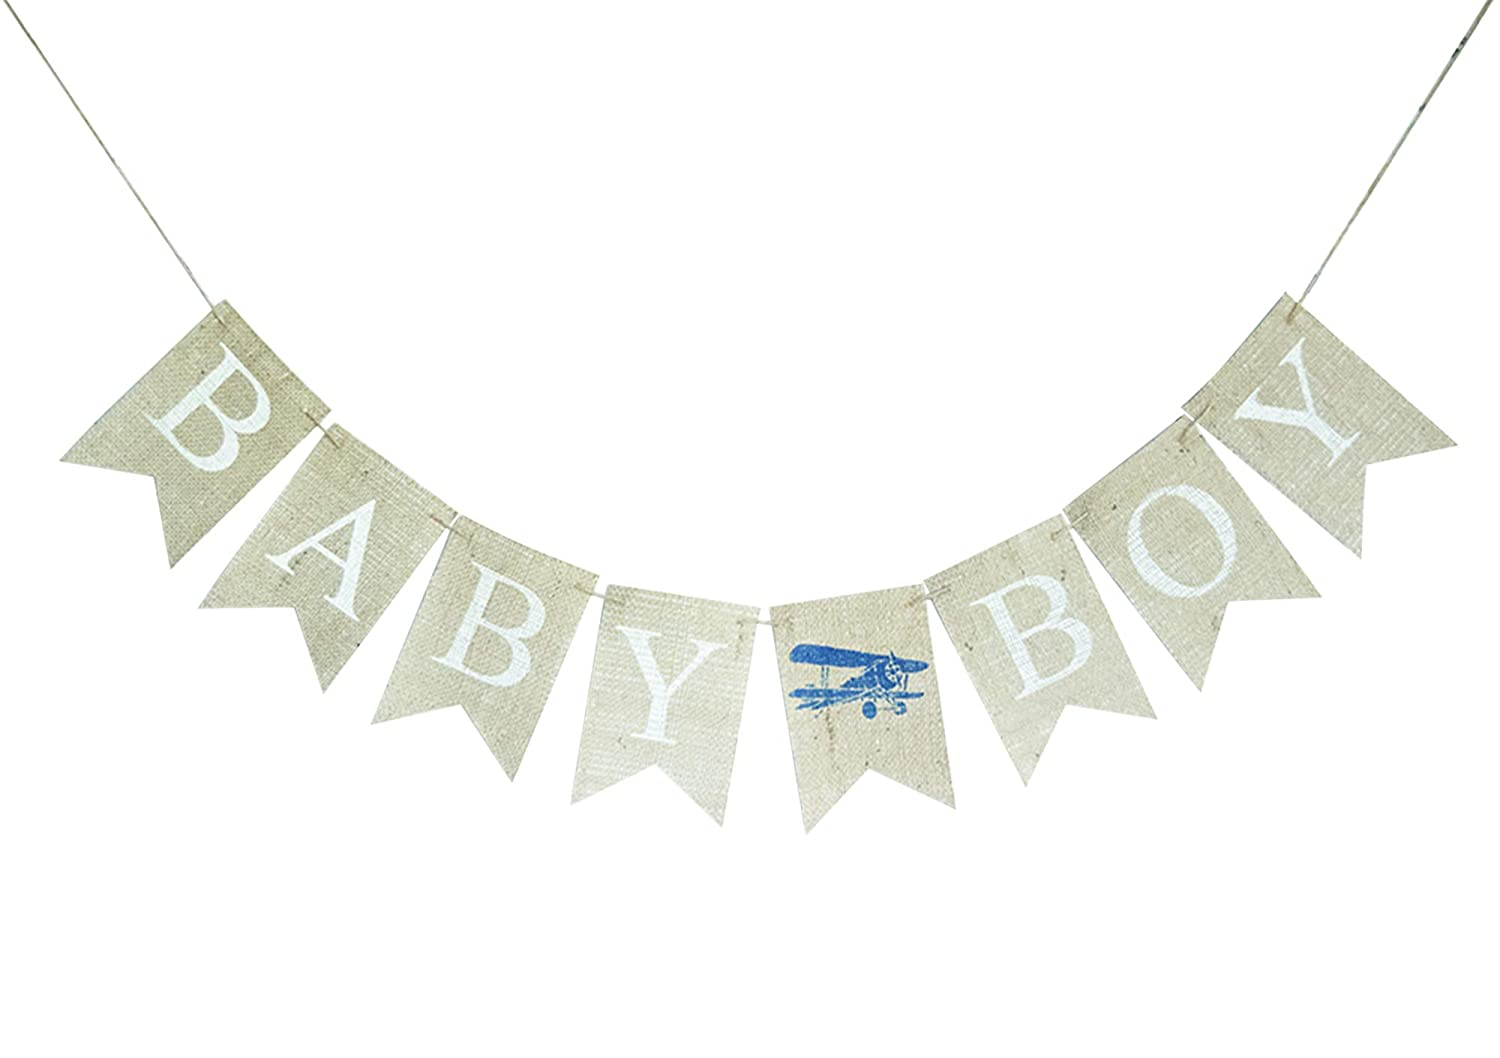 Baby Boy Plane Banner for Shower Reveal Ranking TOP11 Charlotte Mall Dec Party Gender or